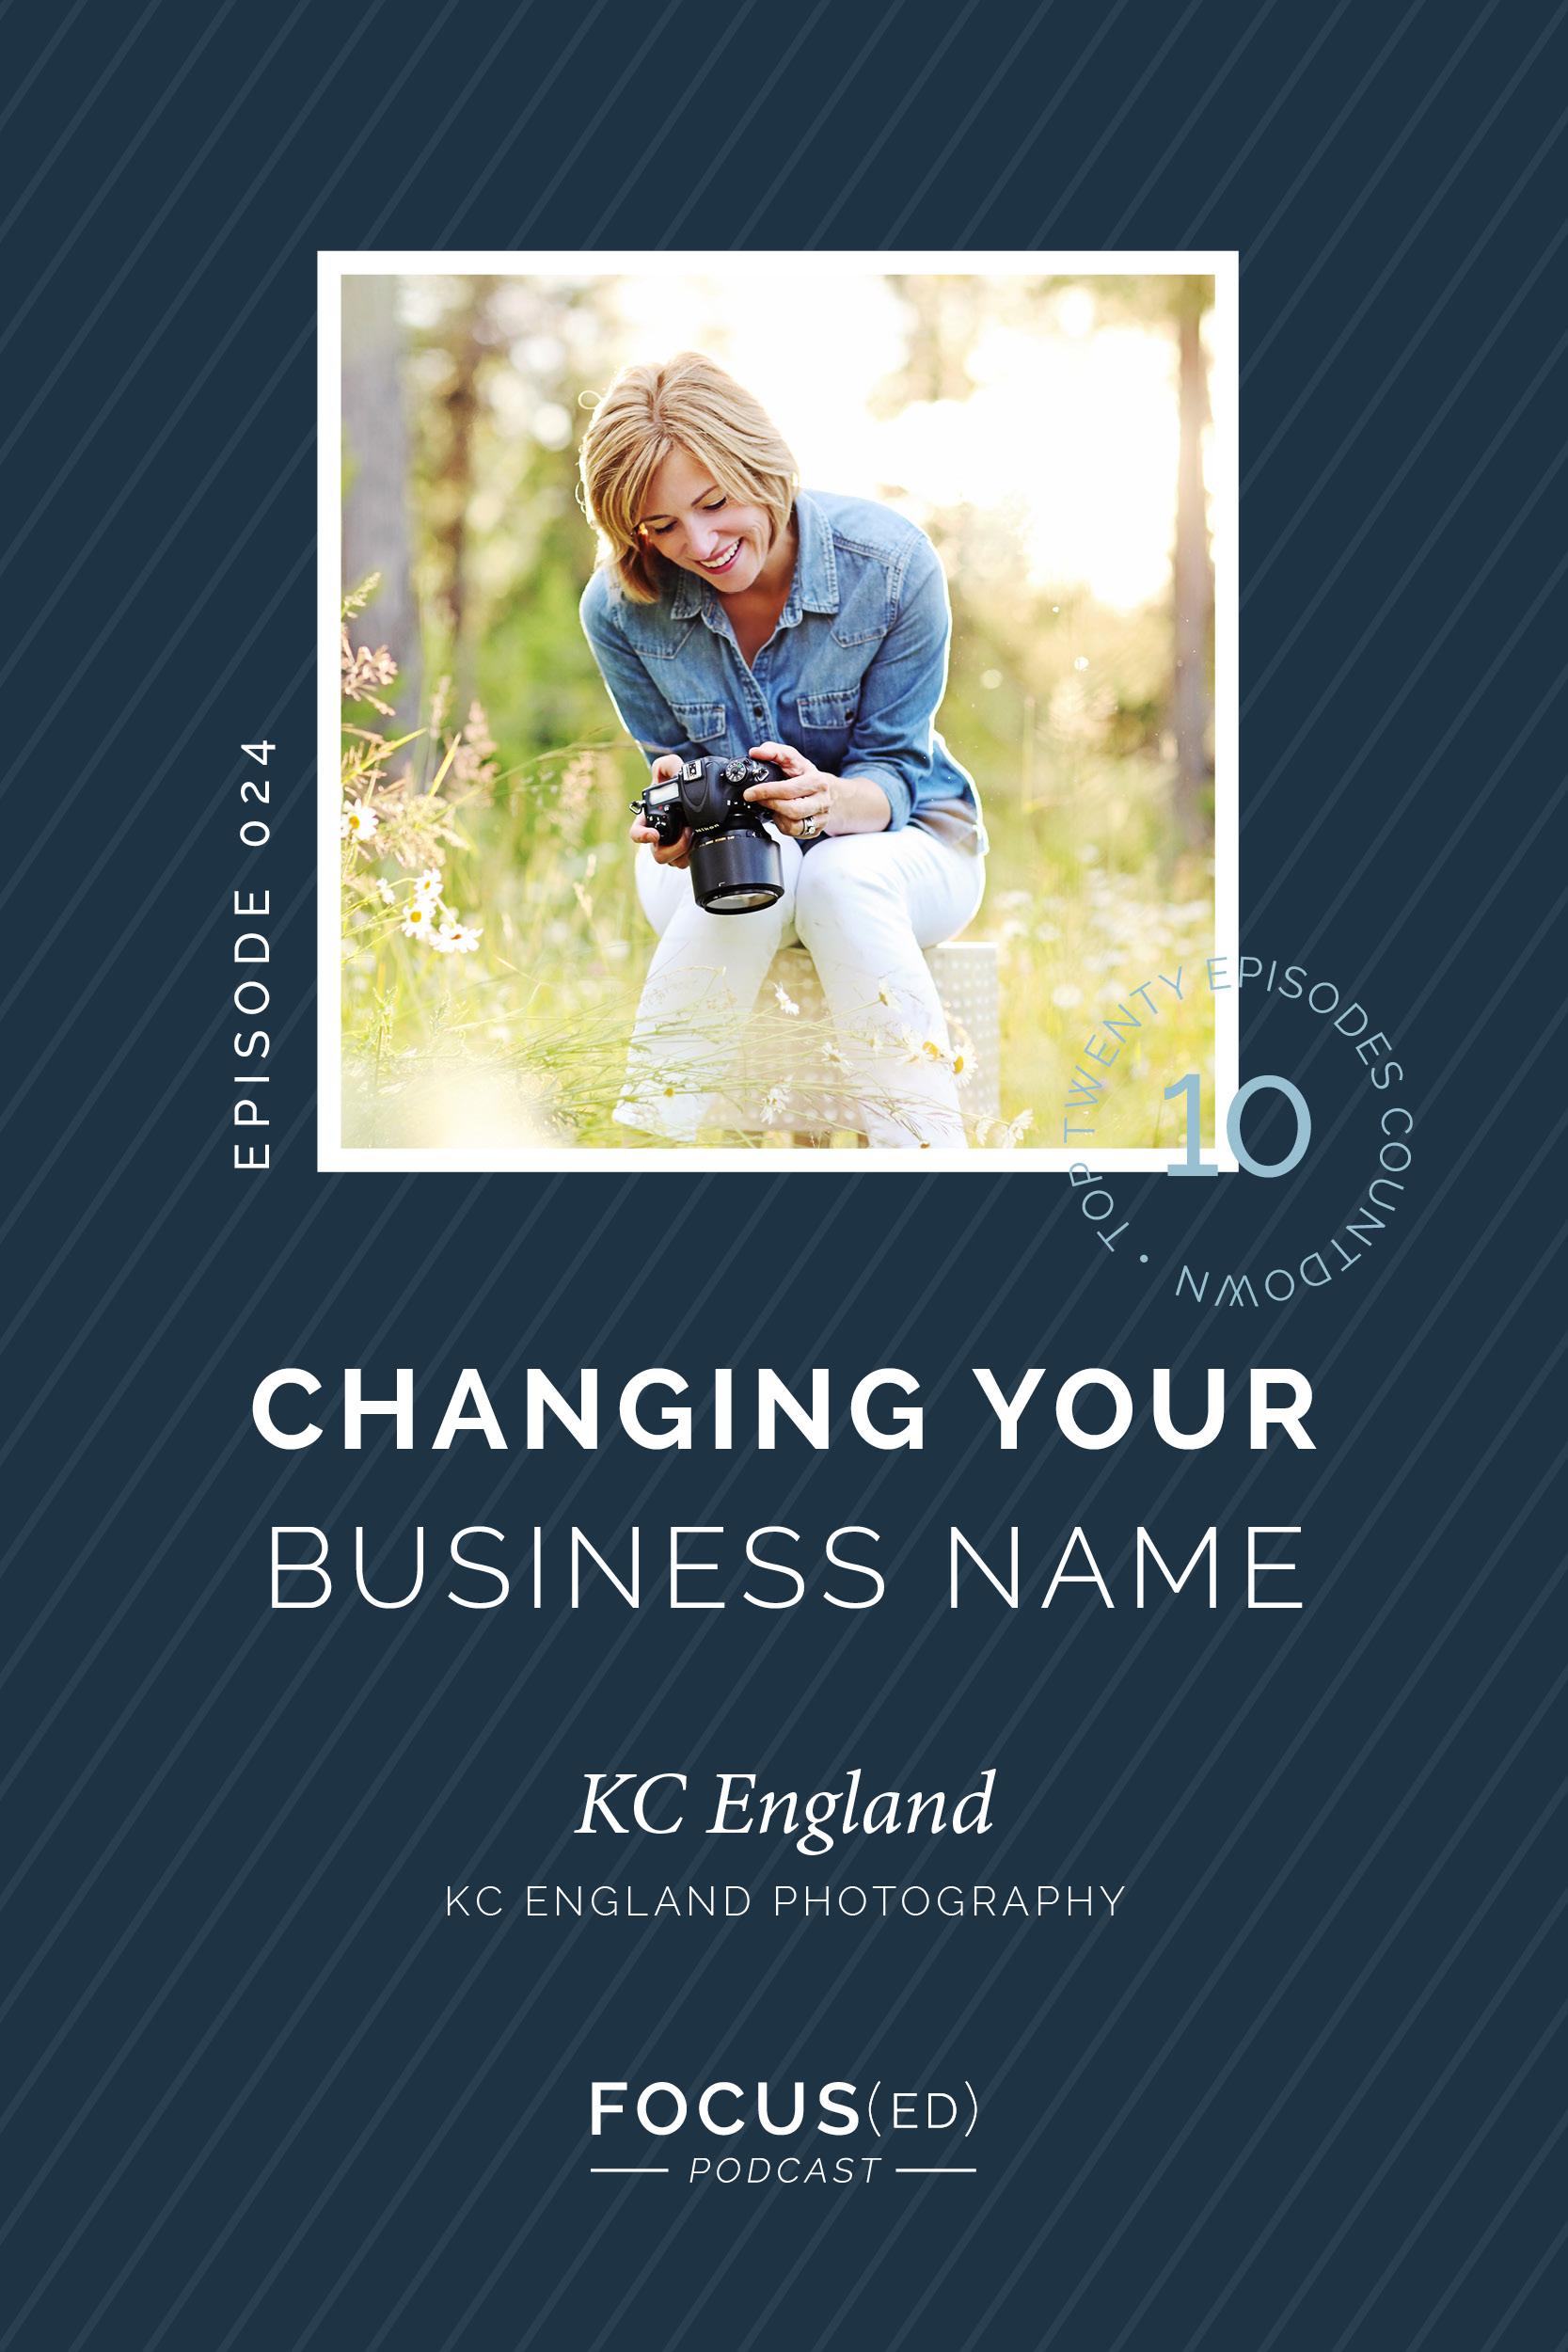 Top 20: #10 How do I change my business name, KC England | Focused Podcast